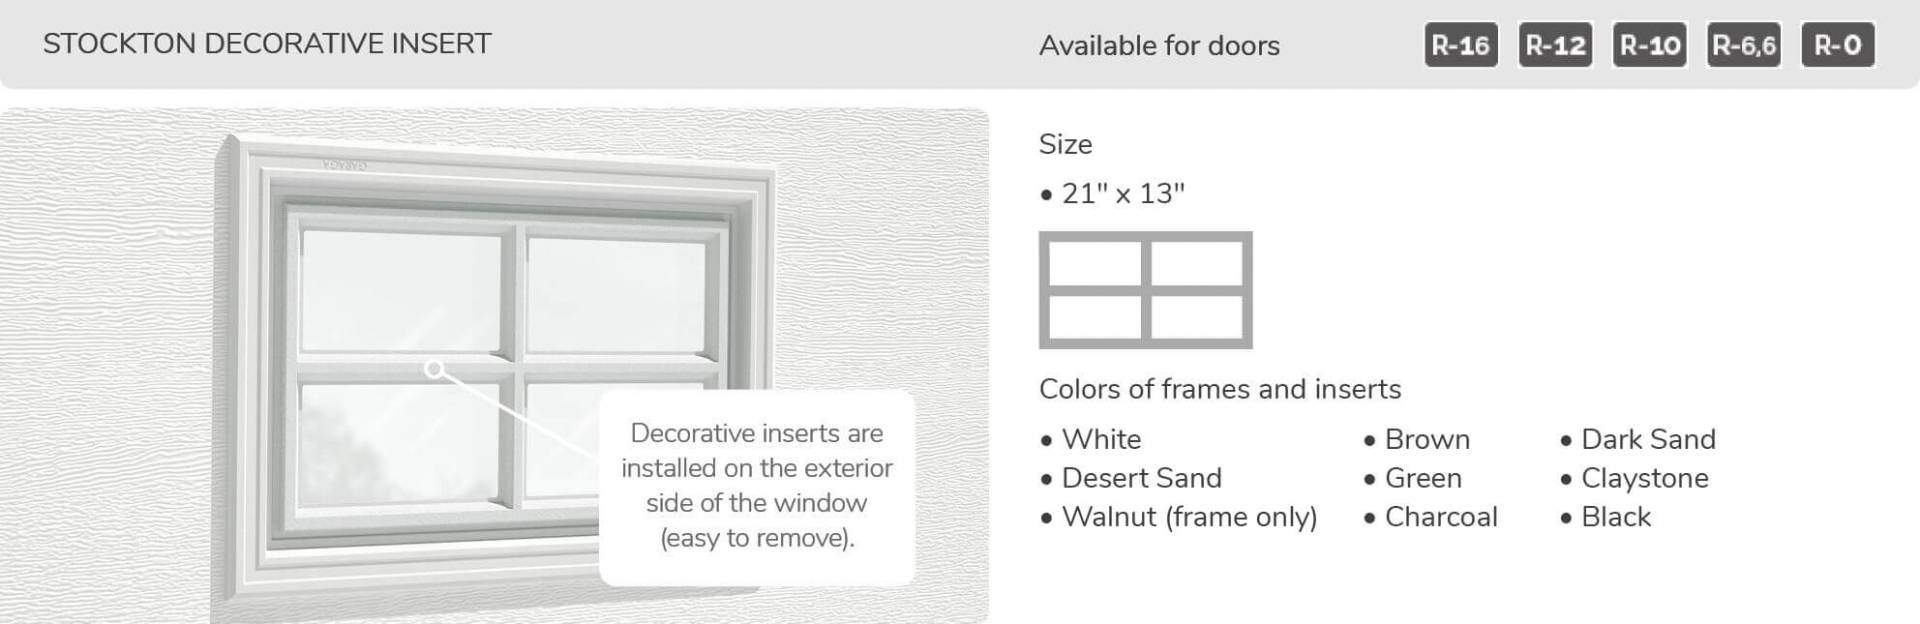 Stockton Decorative Inserts, 21' x 13', available for doors R-16, R-12, R-10, R-6,6 and R-0